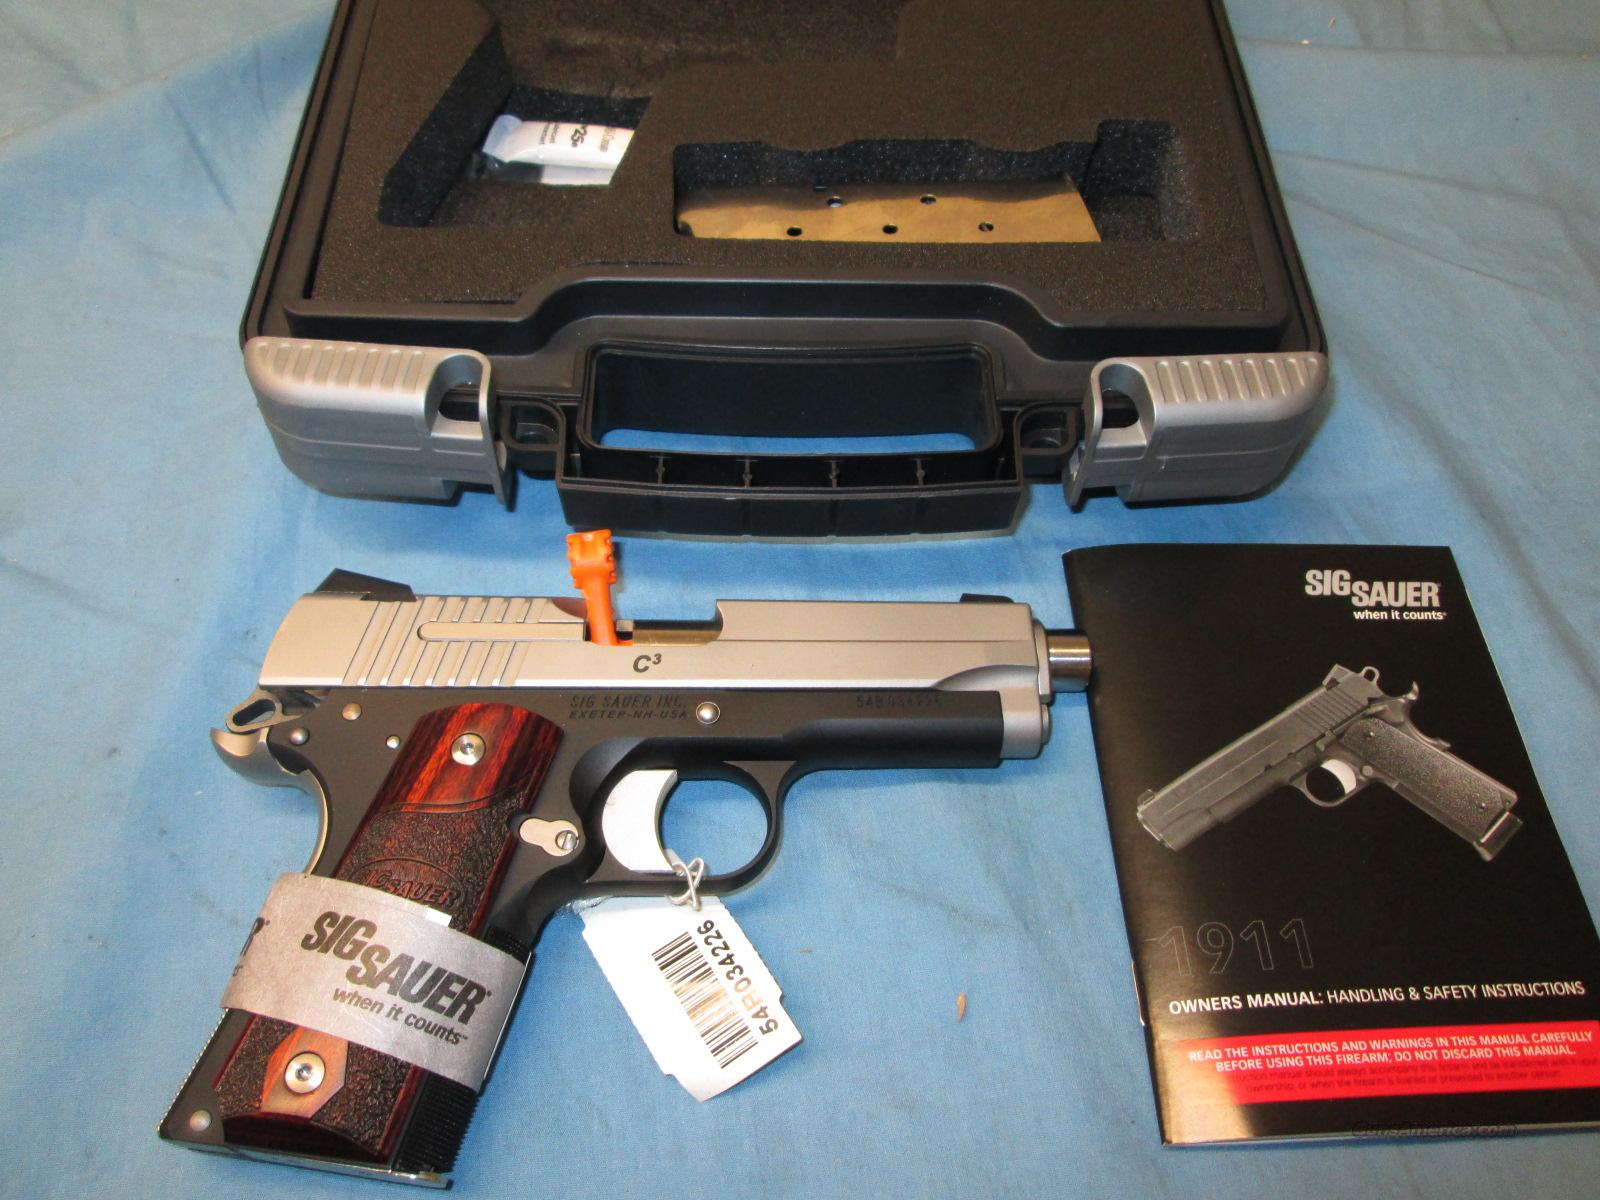 CLEARANCE SALE! Sig 1911 C3 45 ACP 2 Tone  Guns > Pistols > Sig - Sauer/Sigarms Pistols > 1911